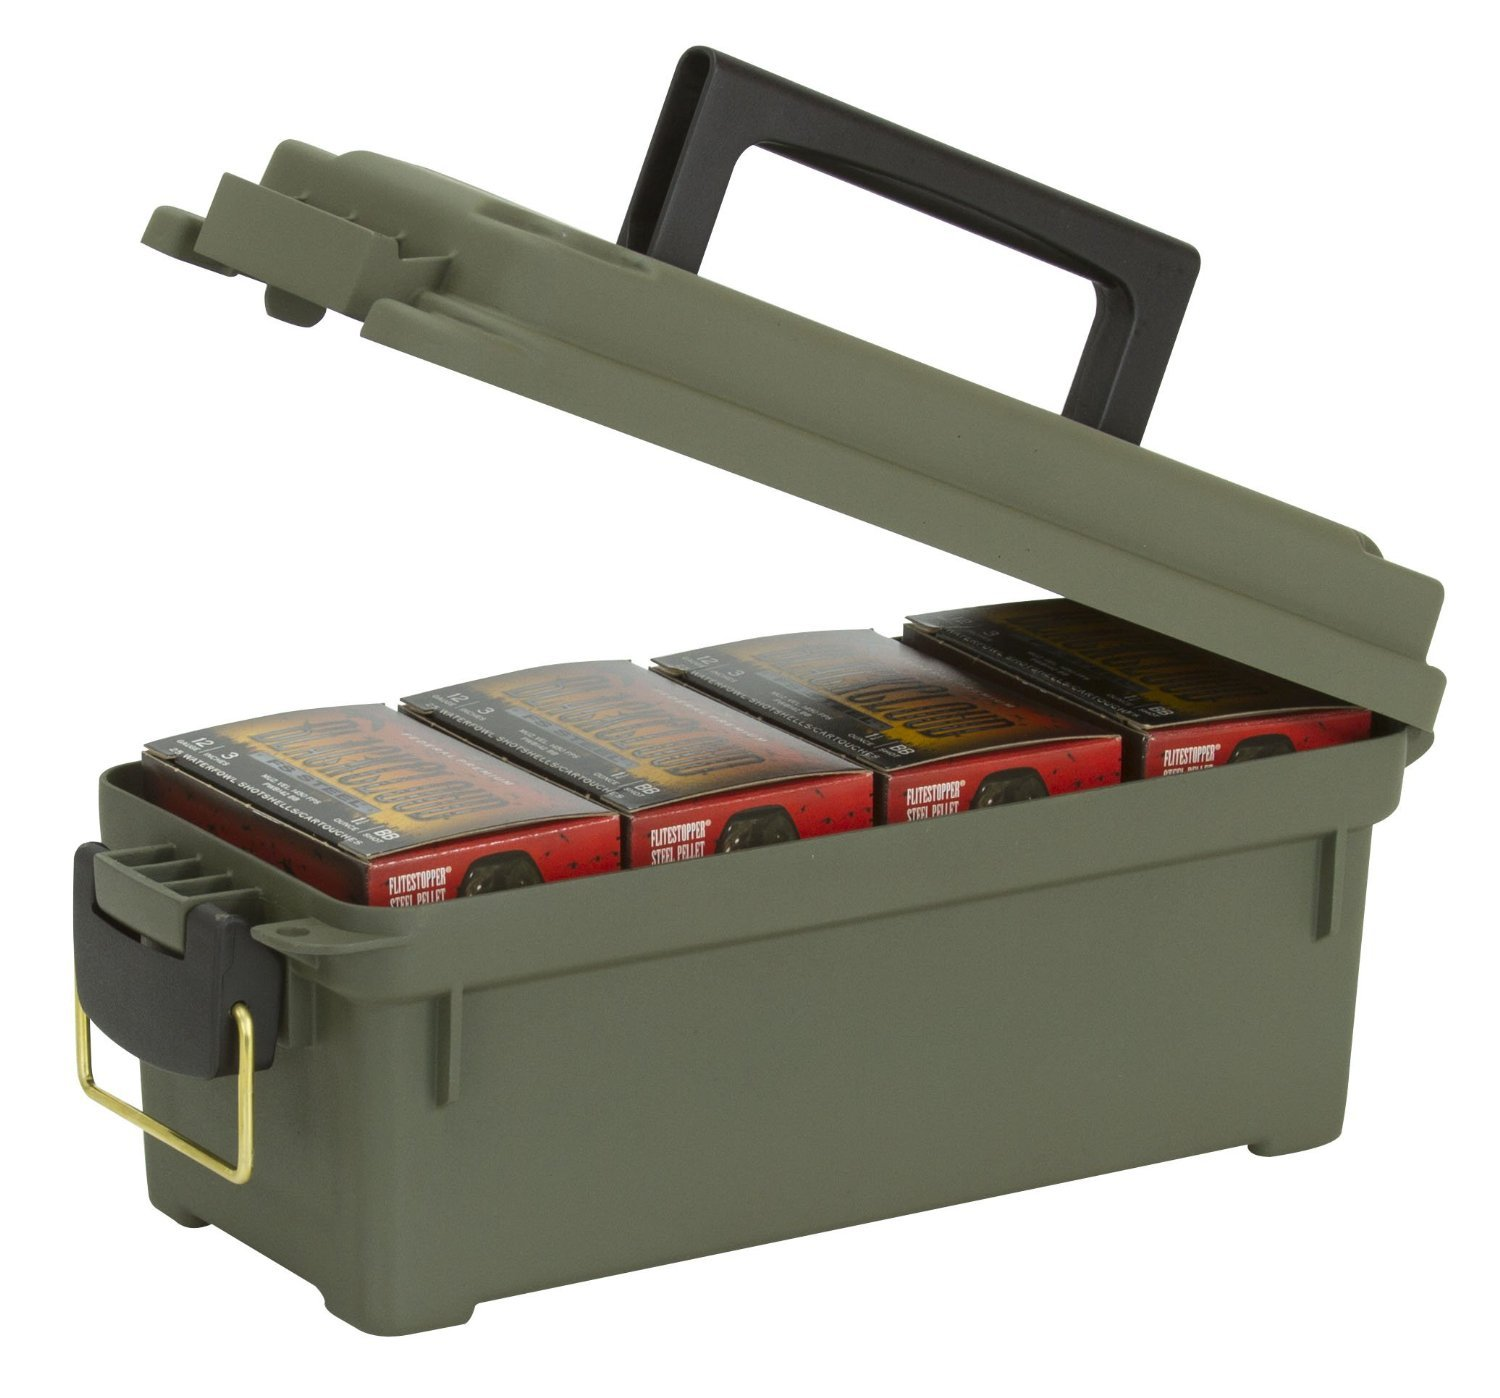 Amazon.com  Plano Shot Shell Box OD Green  Gun Ammunition And Magazine Pouches  Sports u0026 Outdoors  sc 1 st  Amazon.com & Amazon.com : Plano Shot Shell Box OD Green : Gun Ammunition And ...